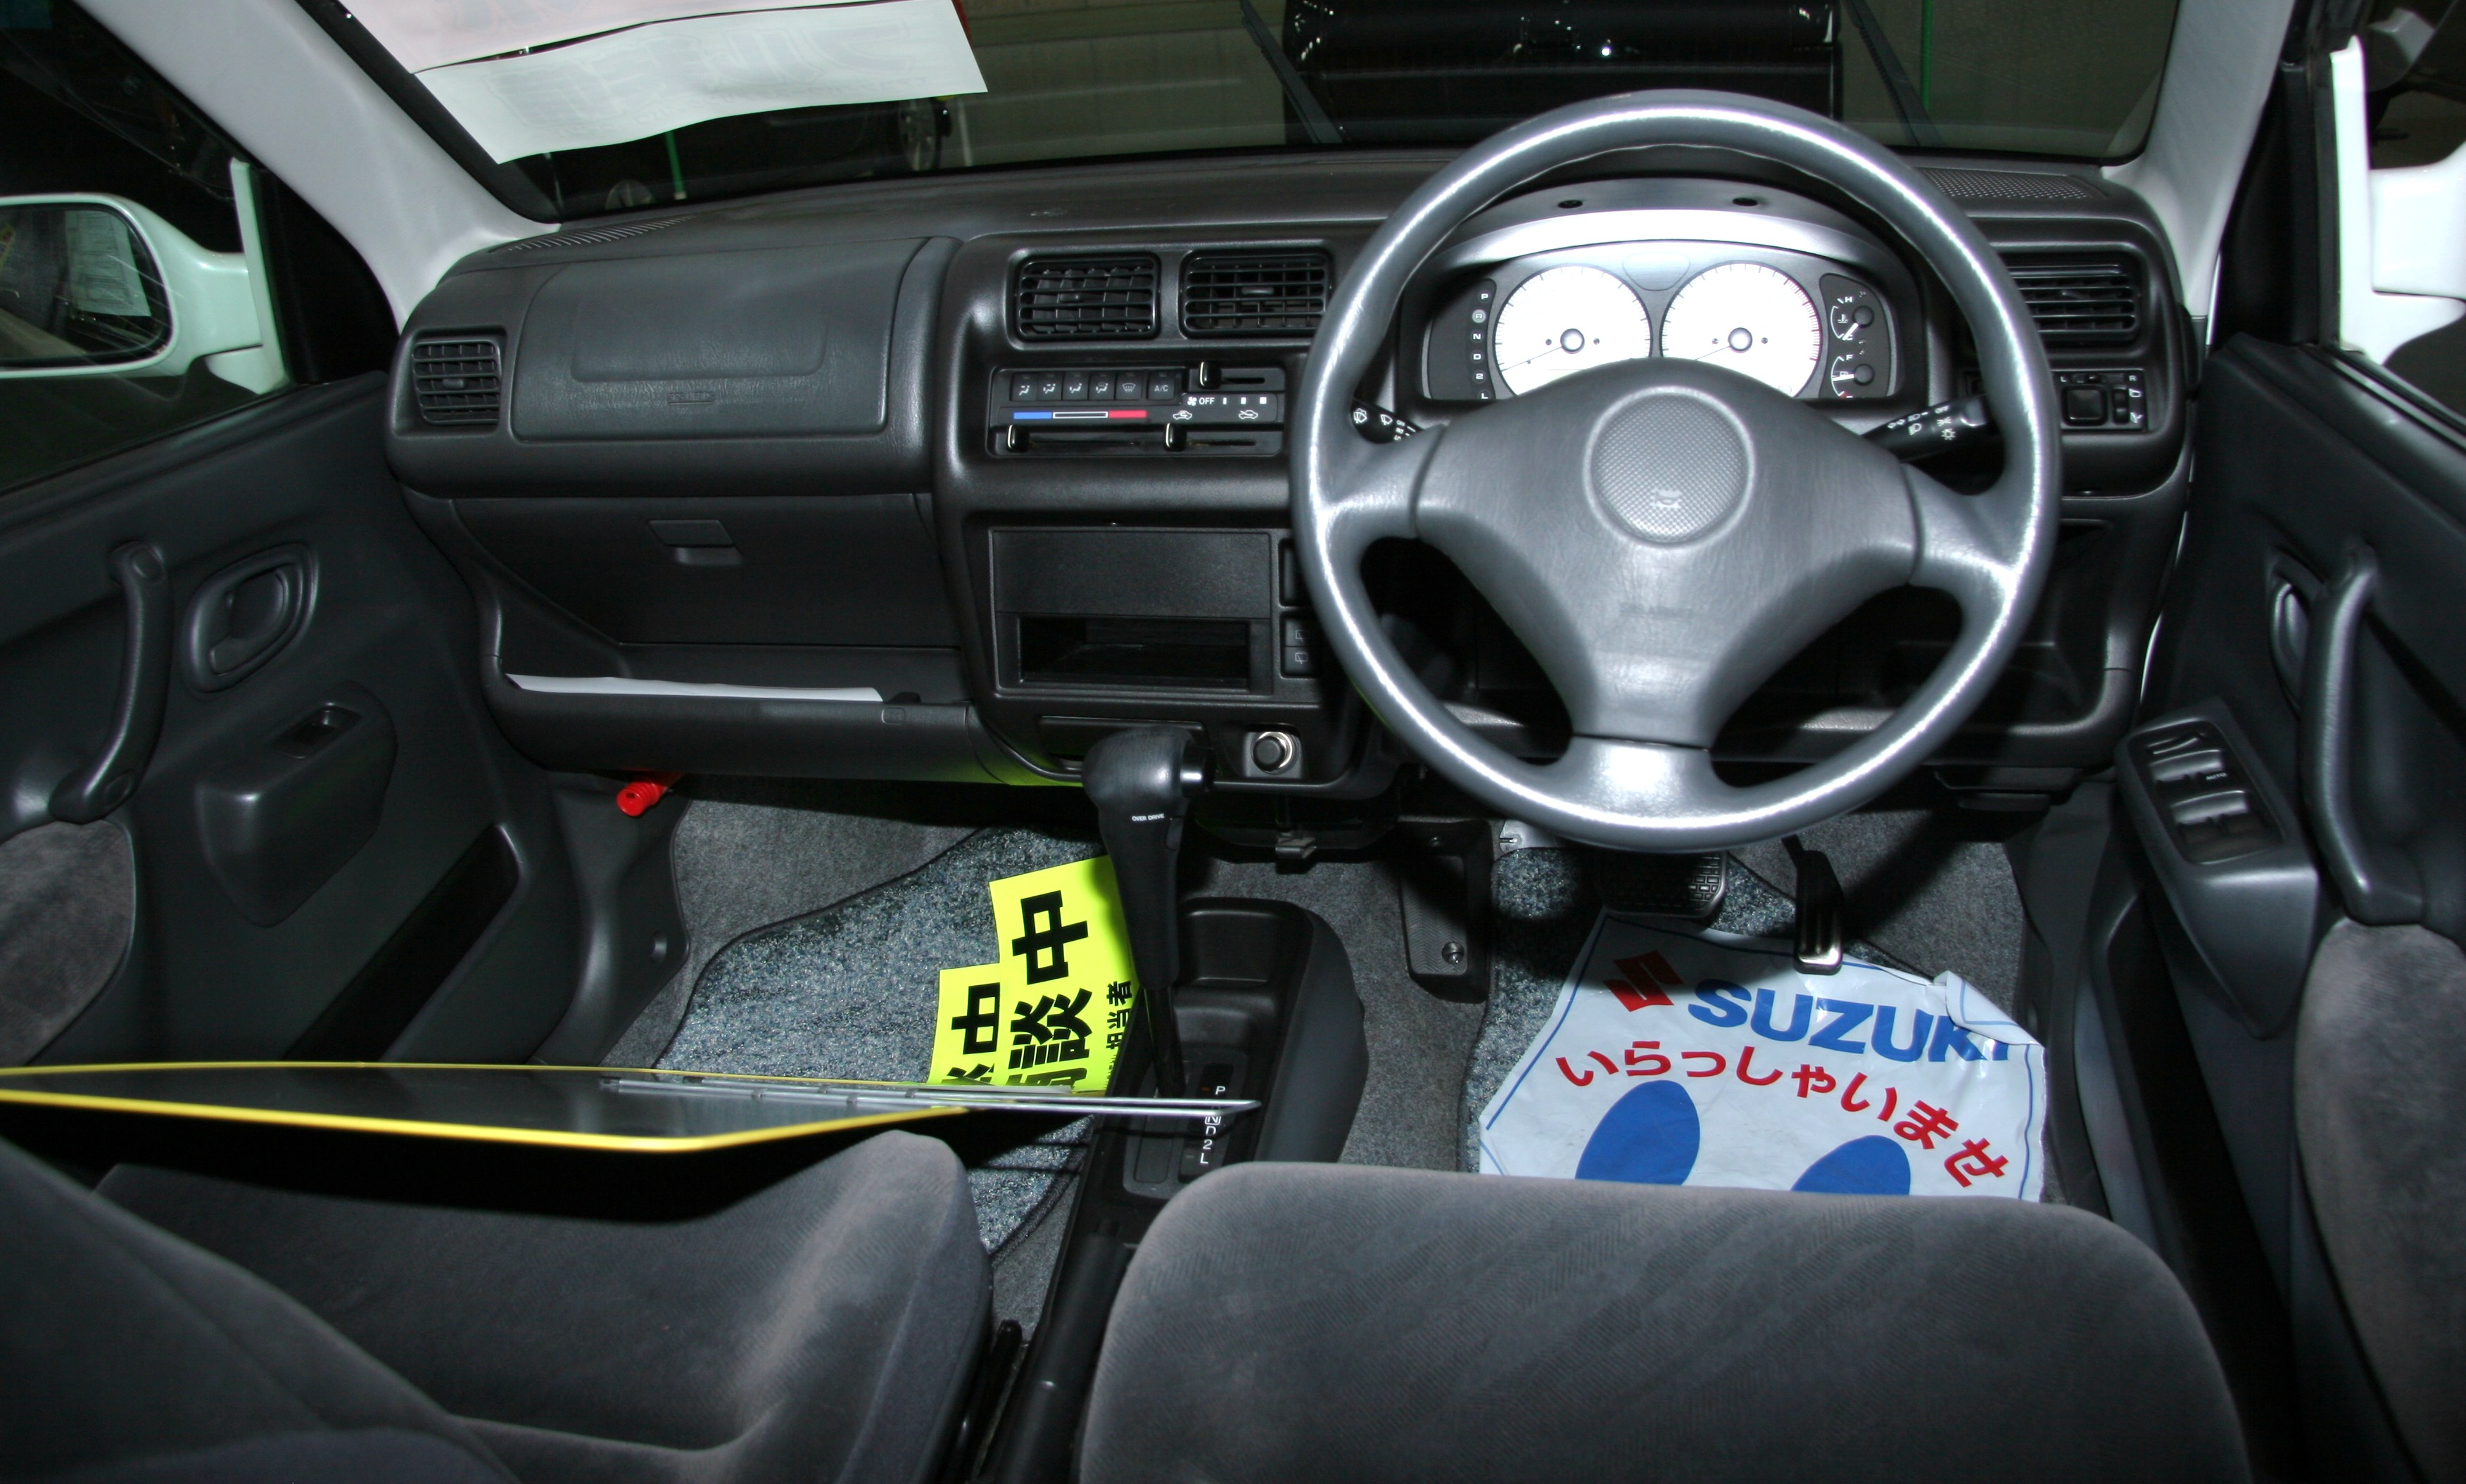 Suzuki kei photo - 1